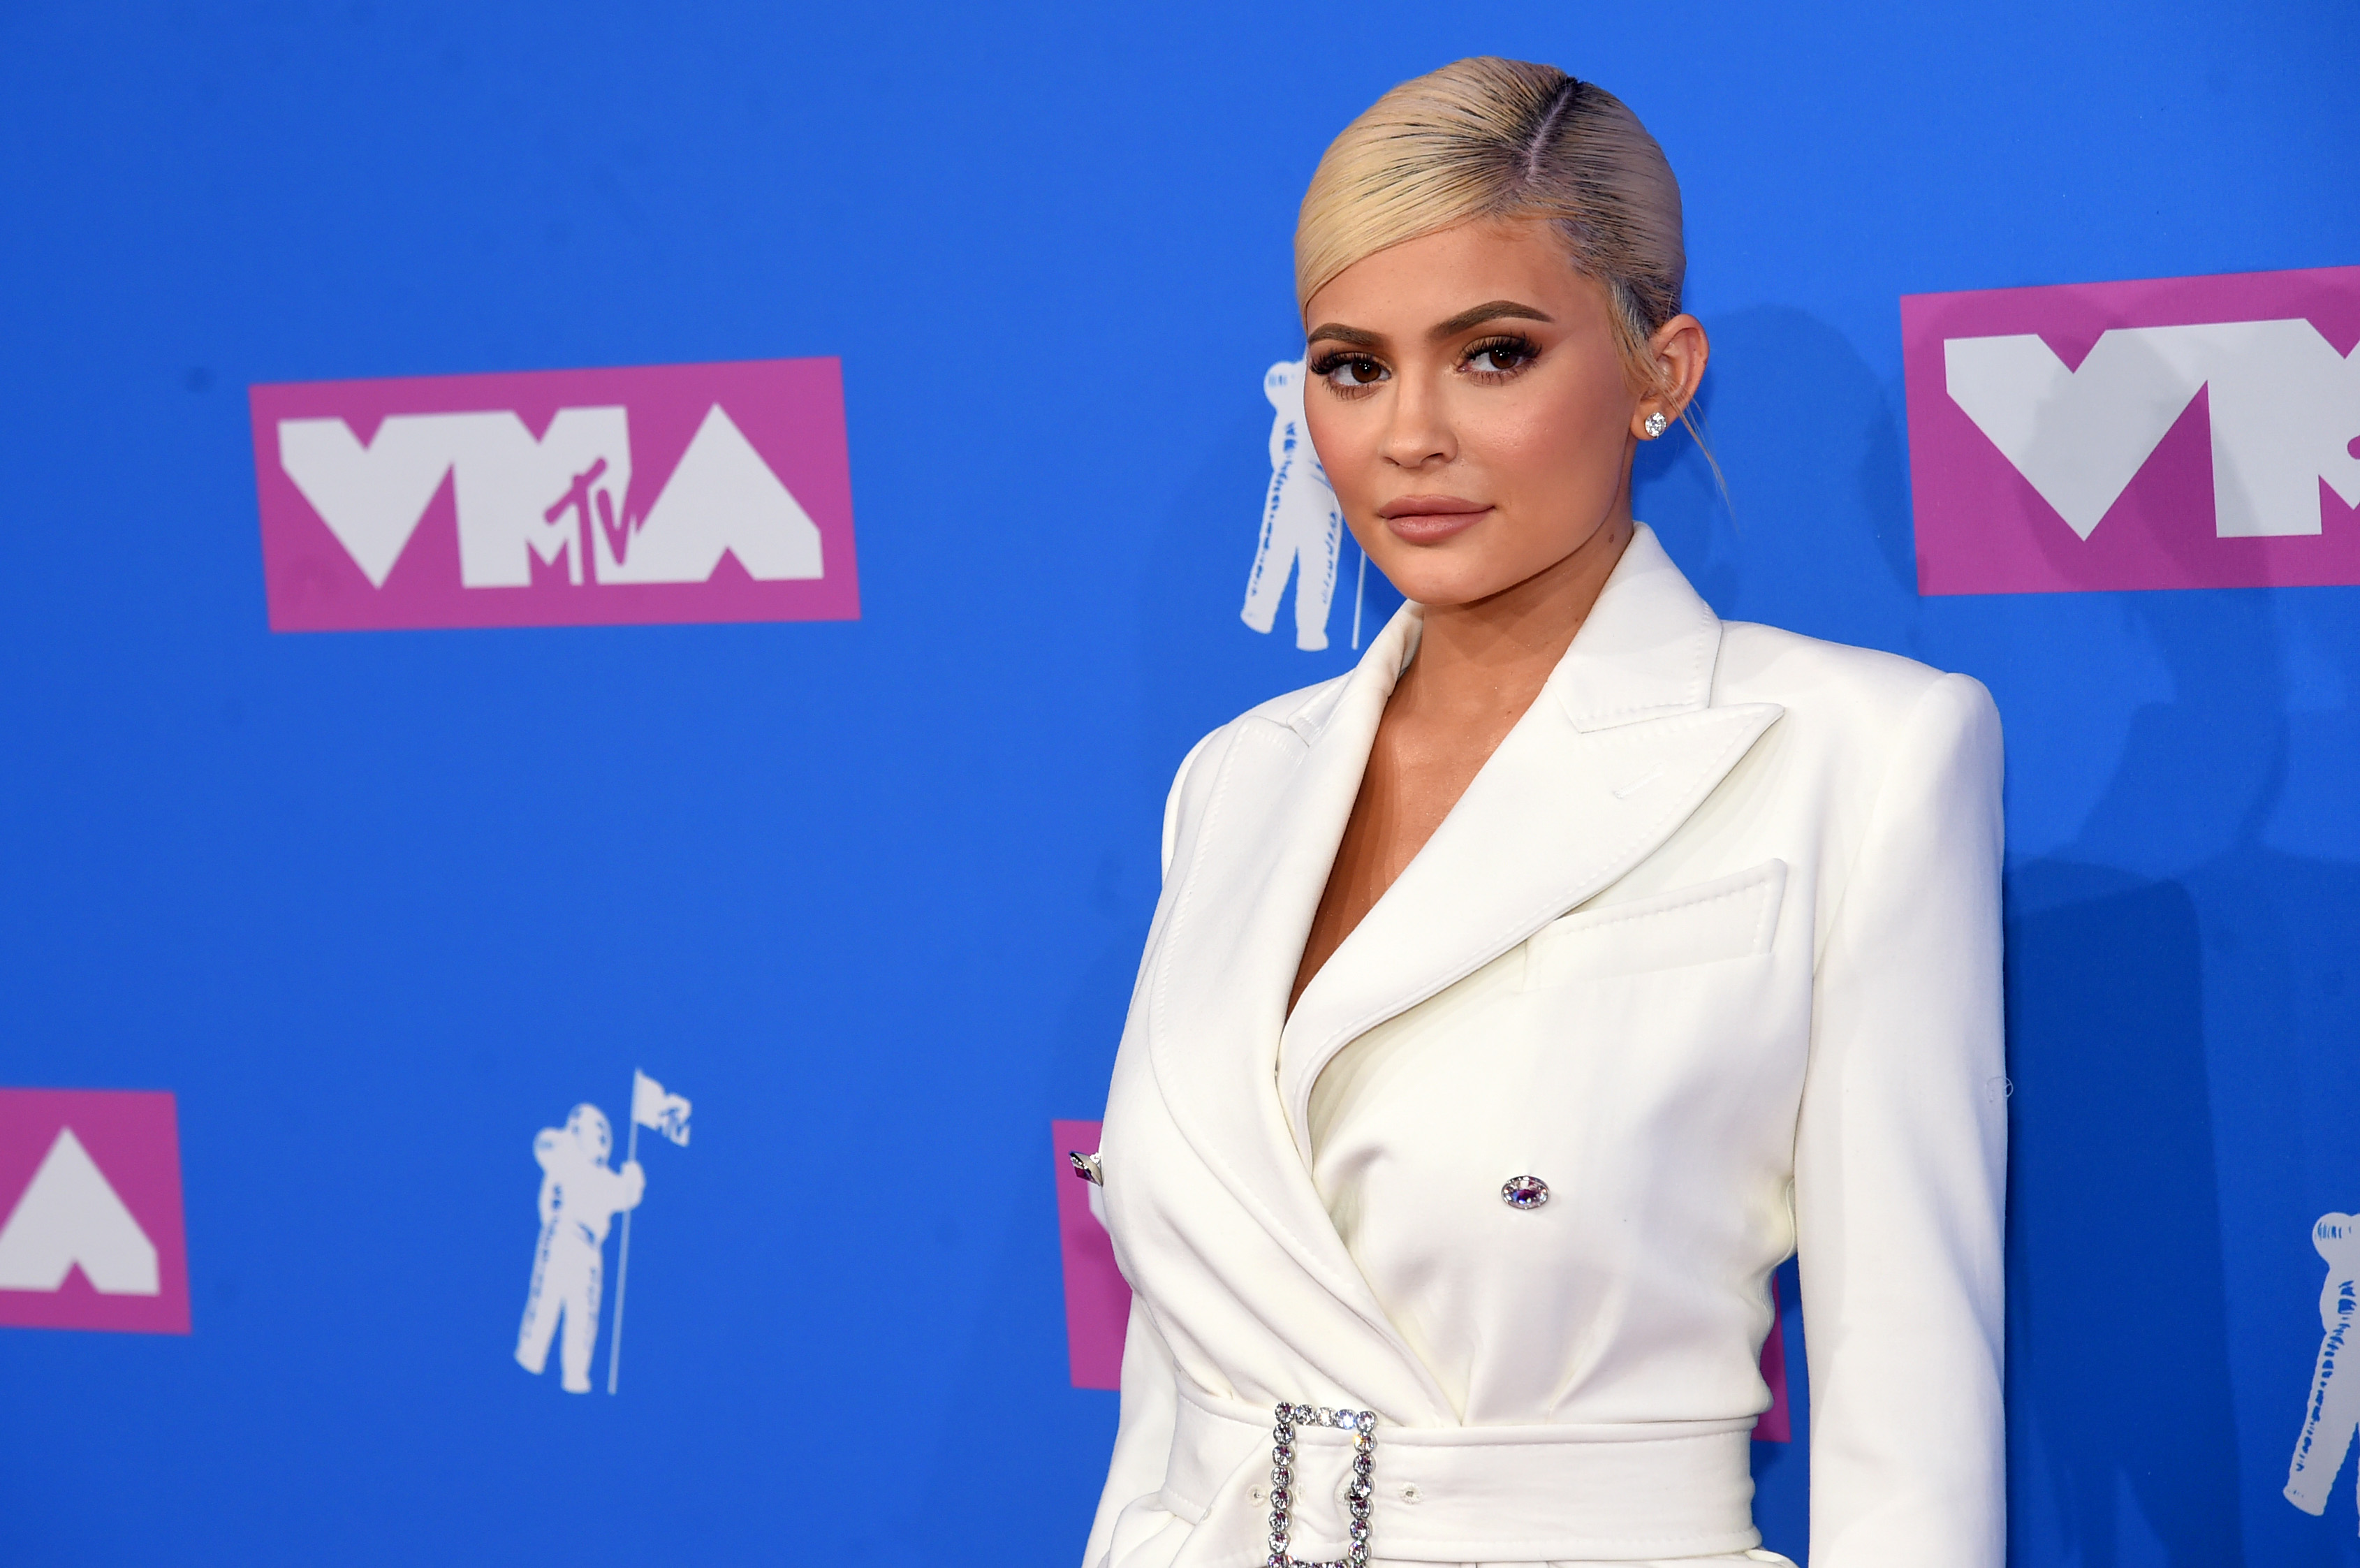 Kylie Jenner has sold 51% of her Kylie Cosmetics line to Coty Inc. for a total of $600 million as she continues to expand globally.